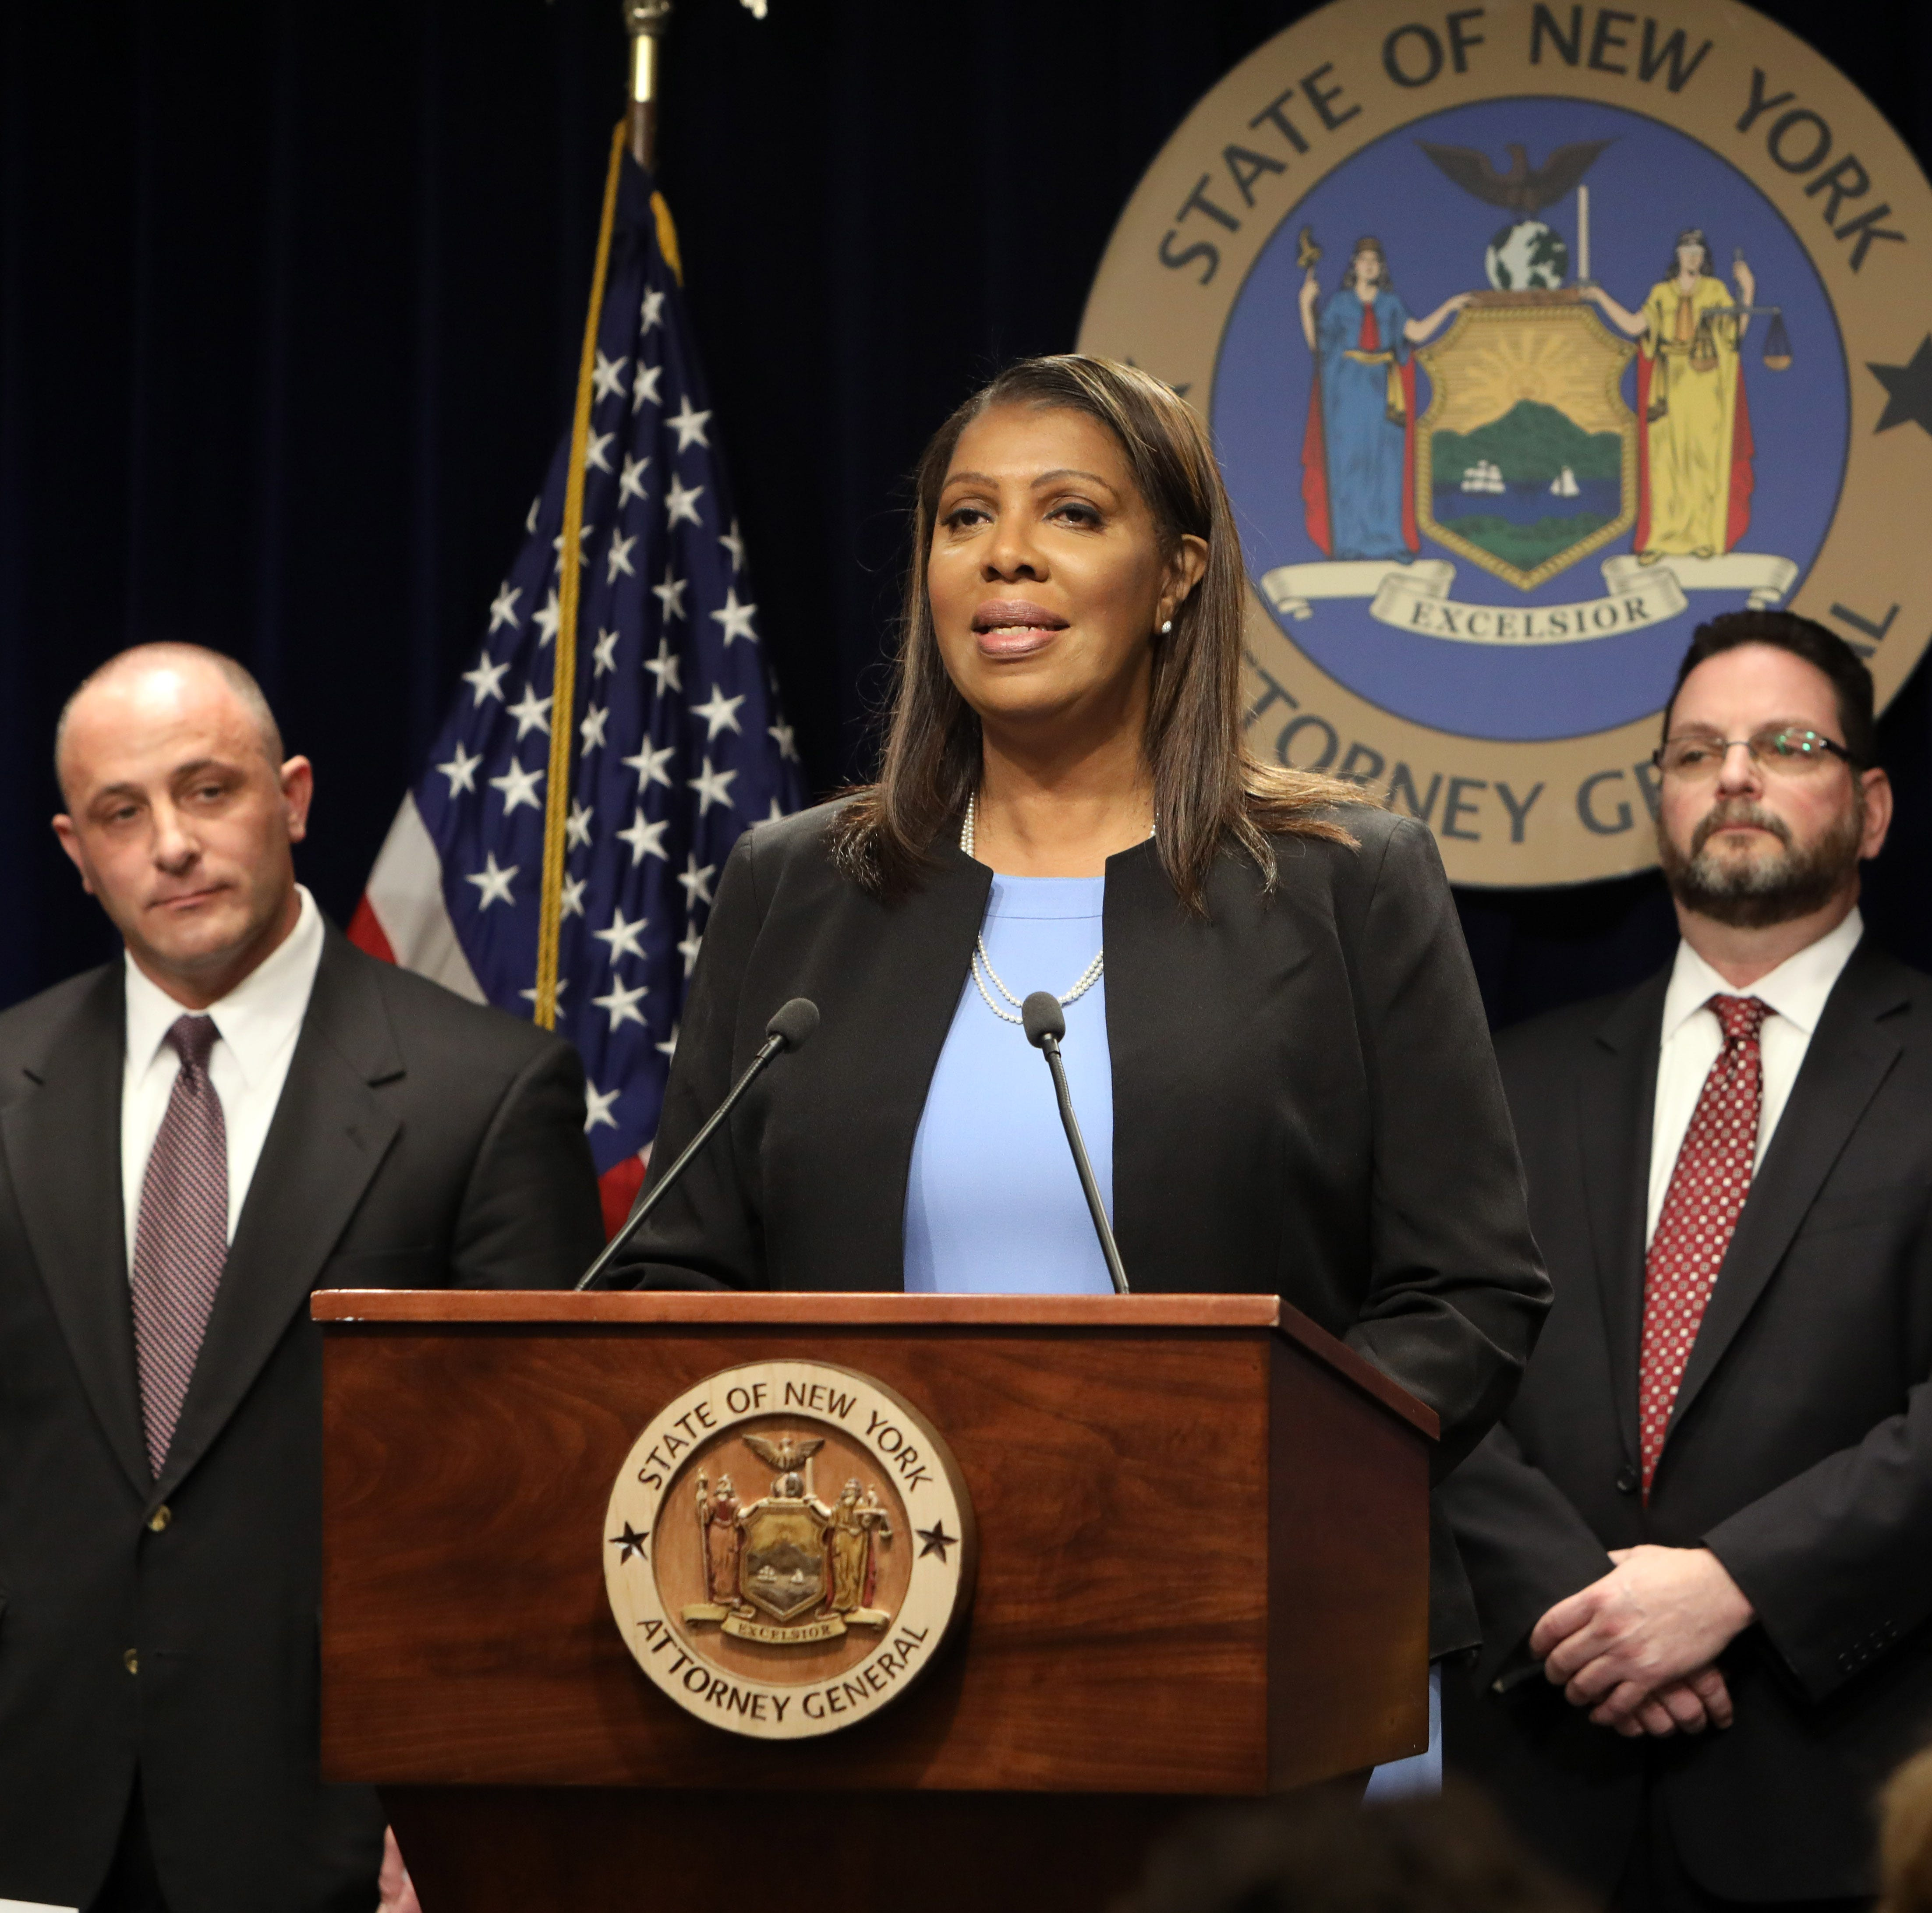 NY Attorney General sues opioid distributors, makers, including Purdue Pharma, Sackler family